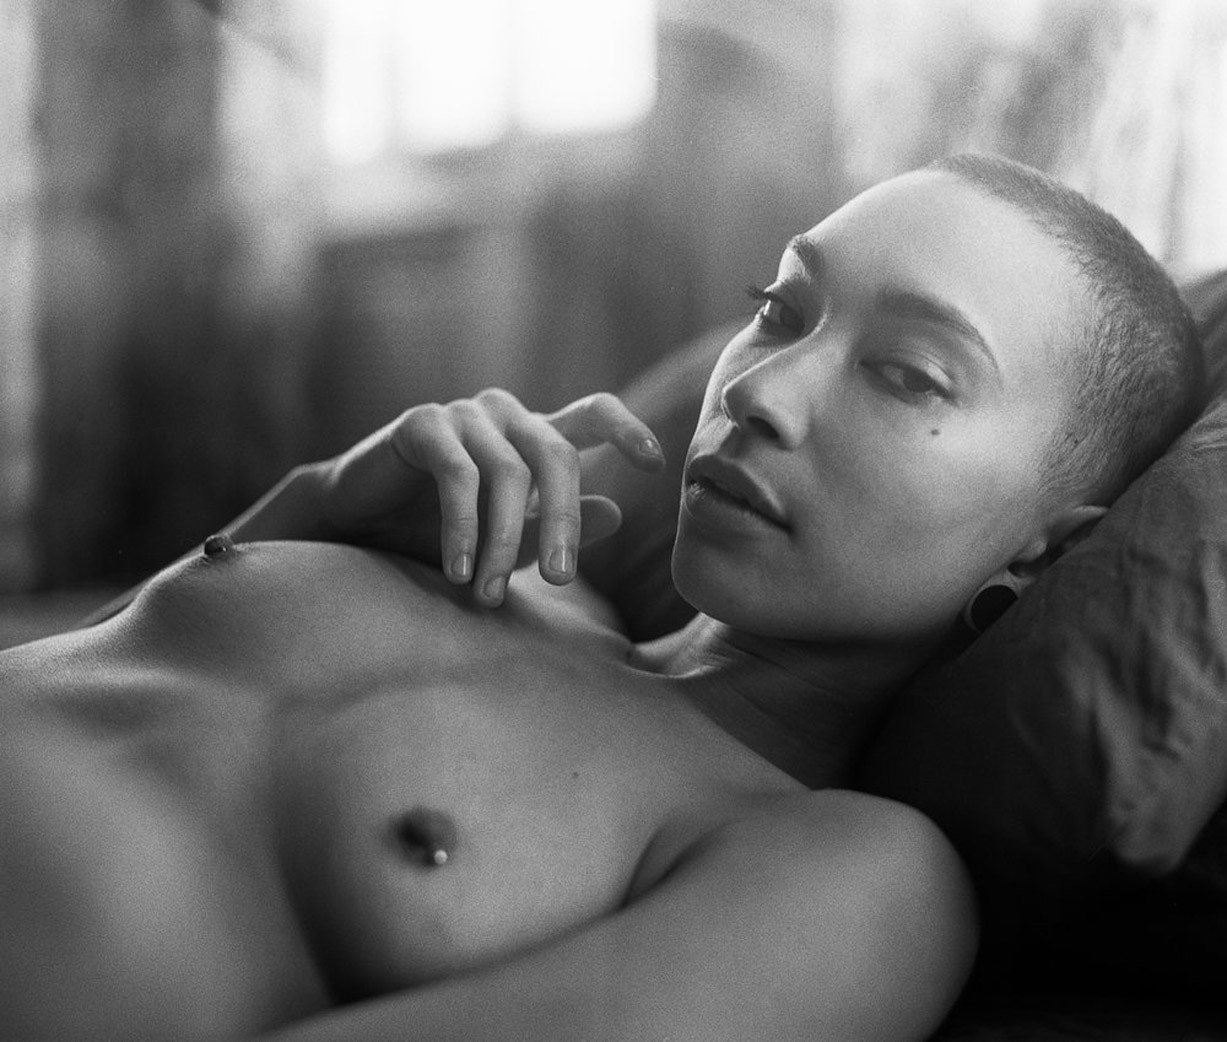 Nyasha by Ramon Jamar as Common Nudes for Rekt Magazine